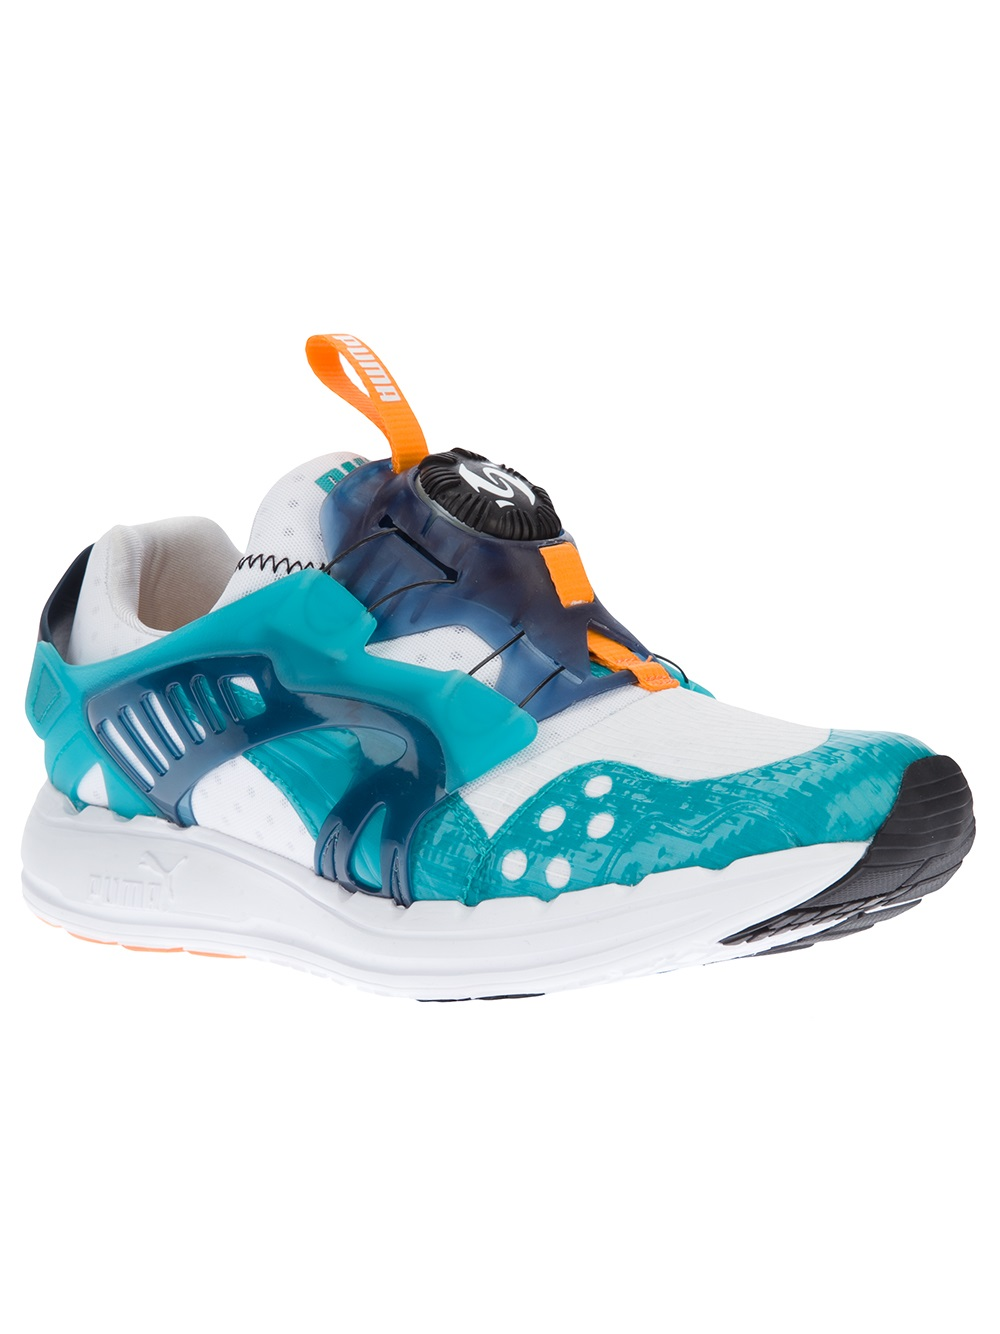 puma disc blaze lite tech sneaker in blue for men white. Black Bedroom Furniture Sets. Home Design Ideas